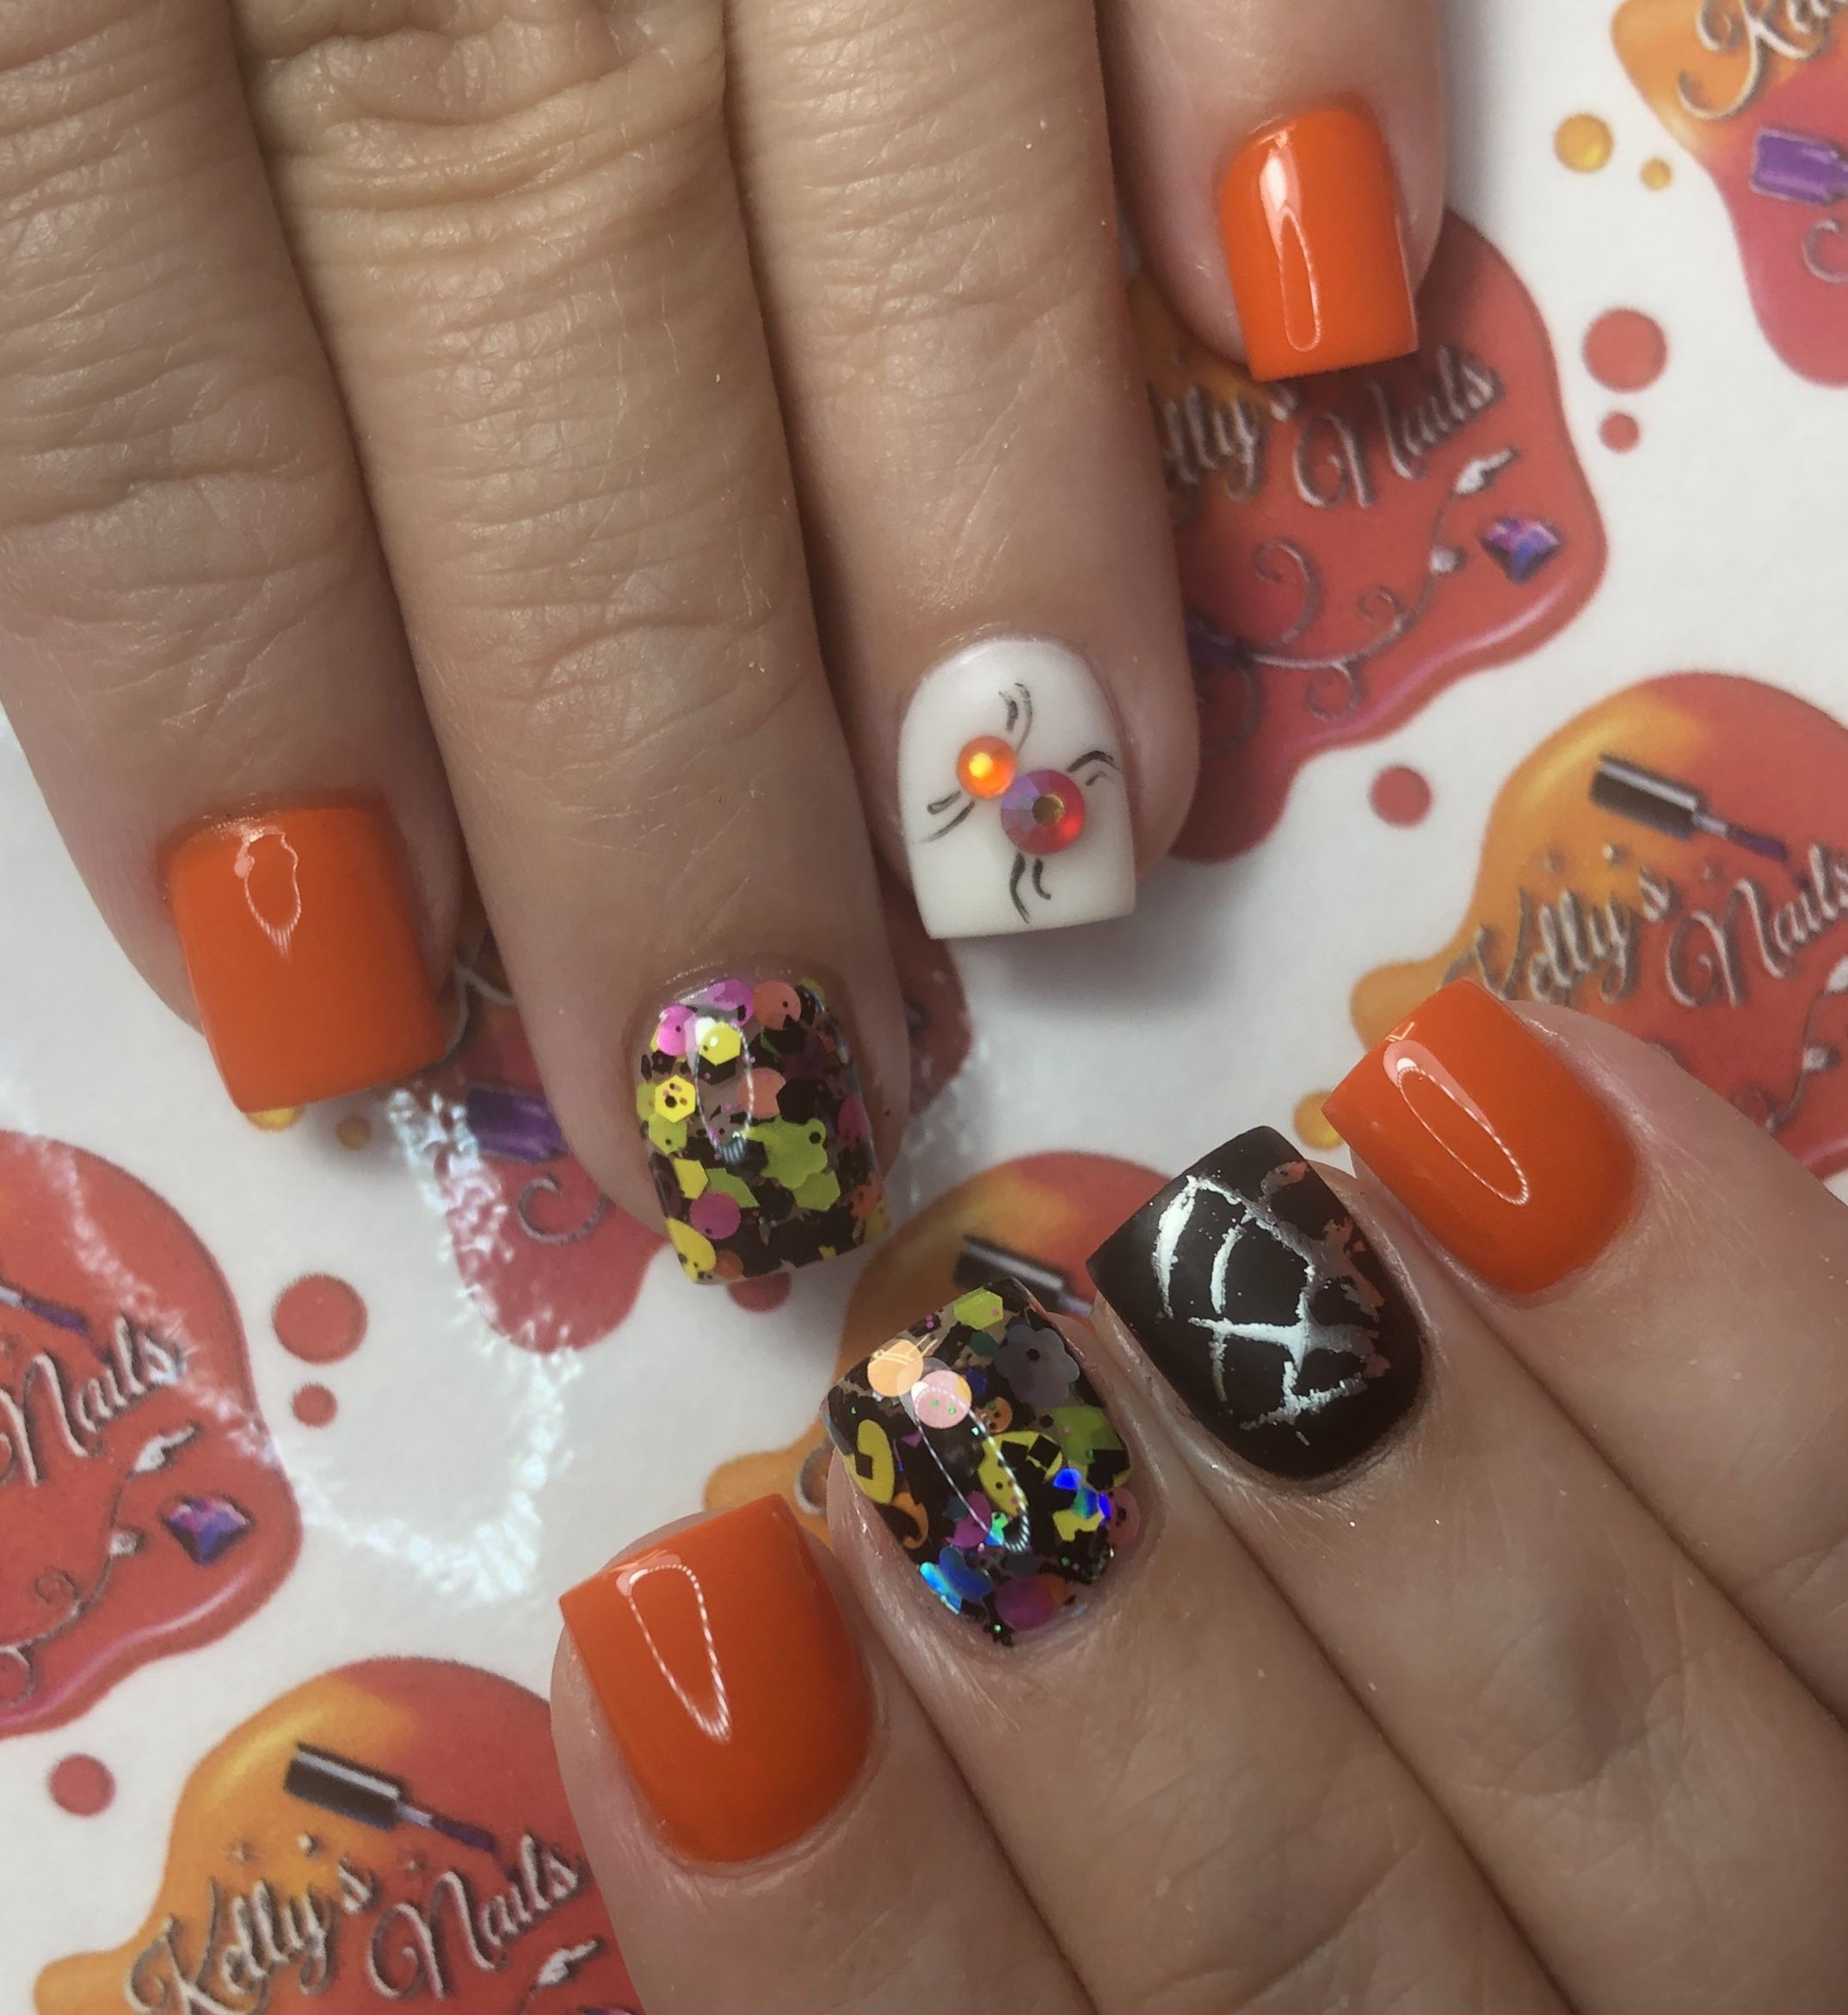 Pin by Victoria Kelly on Nails   Nails, Beauty